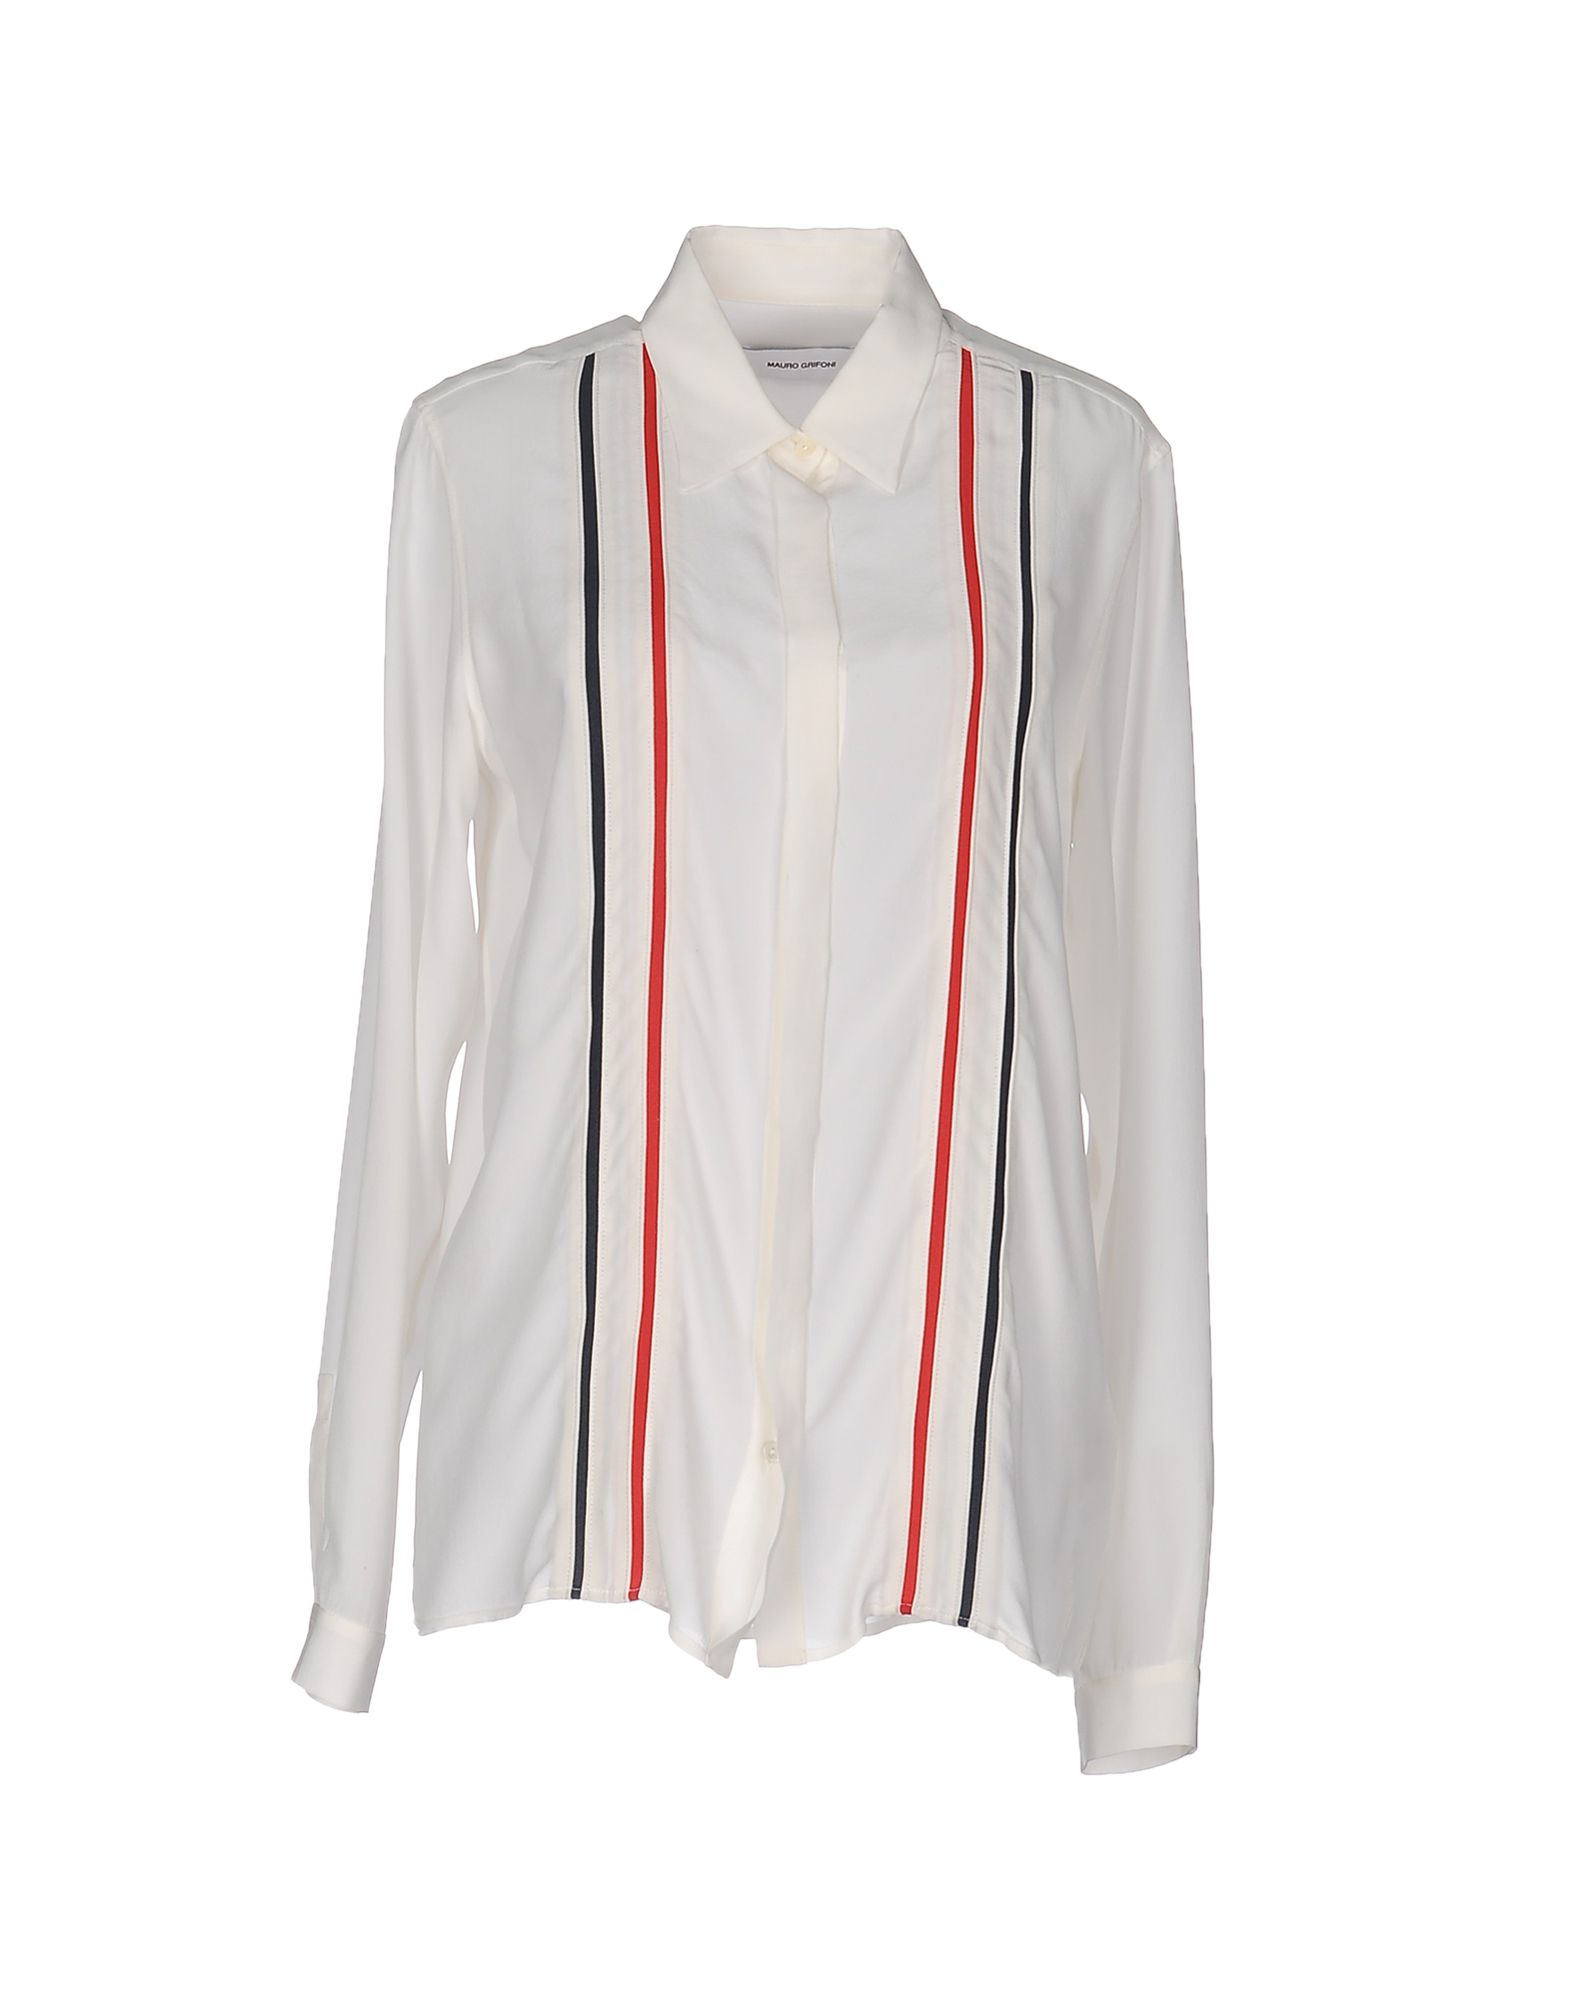 Mauro Grifoni SILK SHIRTS & BLOUSES